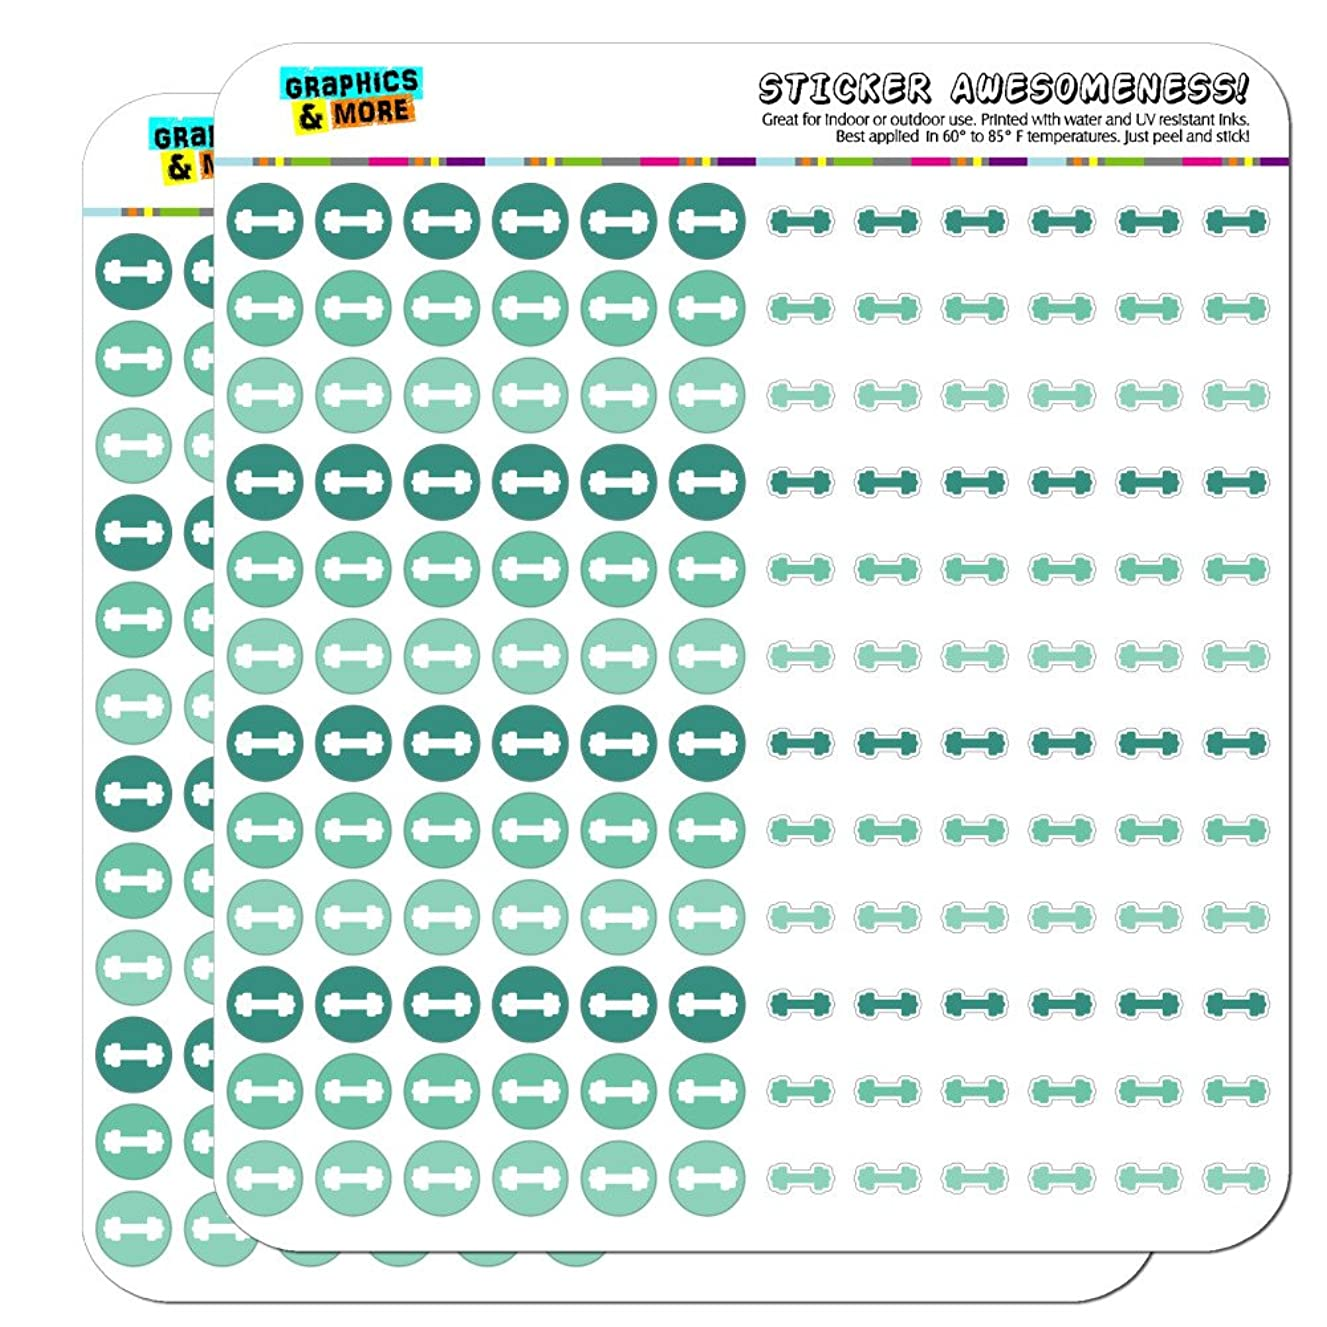 Dumbbell Exercise Weight Lifting Loss Workout Dots Planner Scrapbooking Crafting Stickers - Teal - Clear